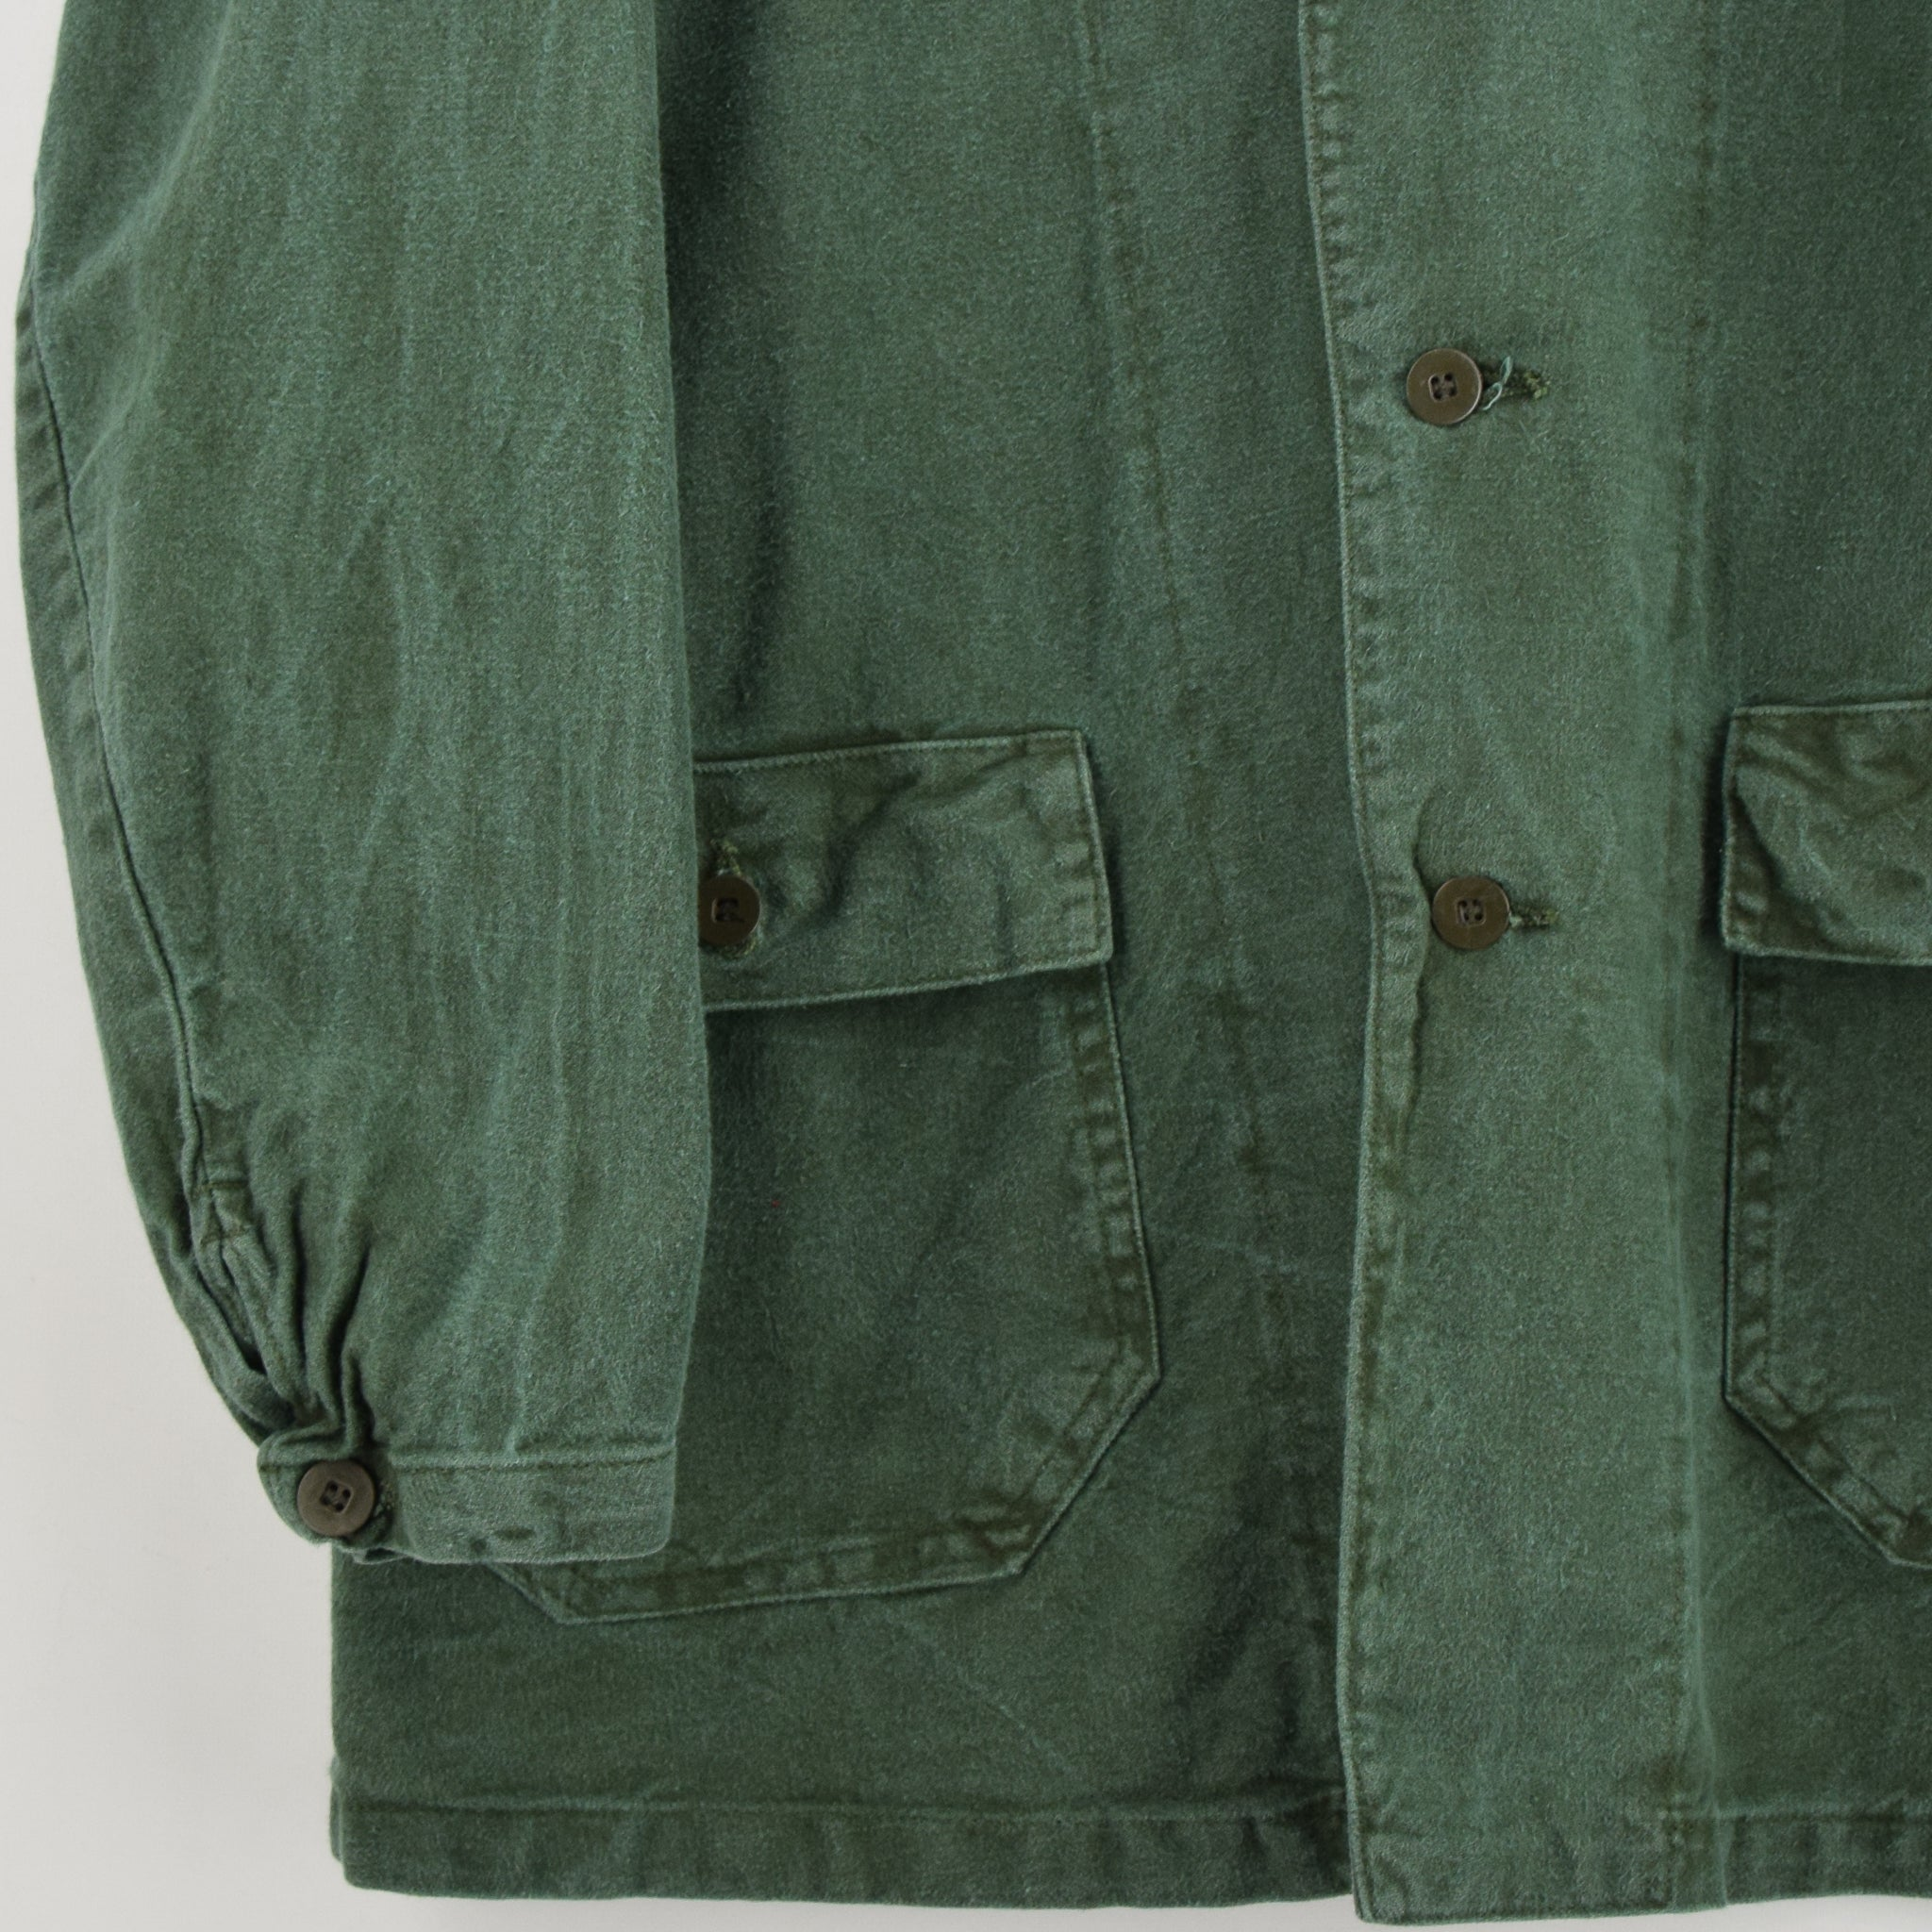 Vintage Swedish Worker Style Distressed Green Military Cotton Field Jacket M / L front hem